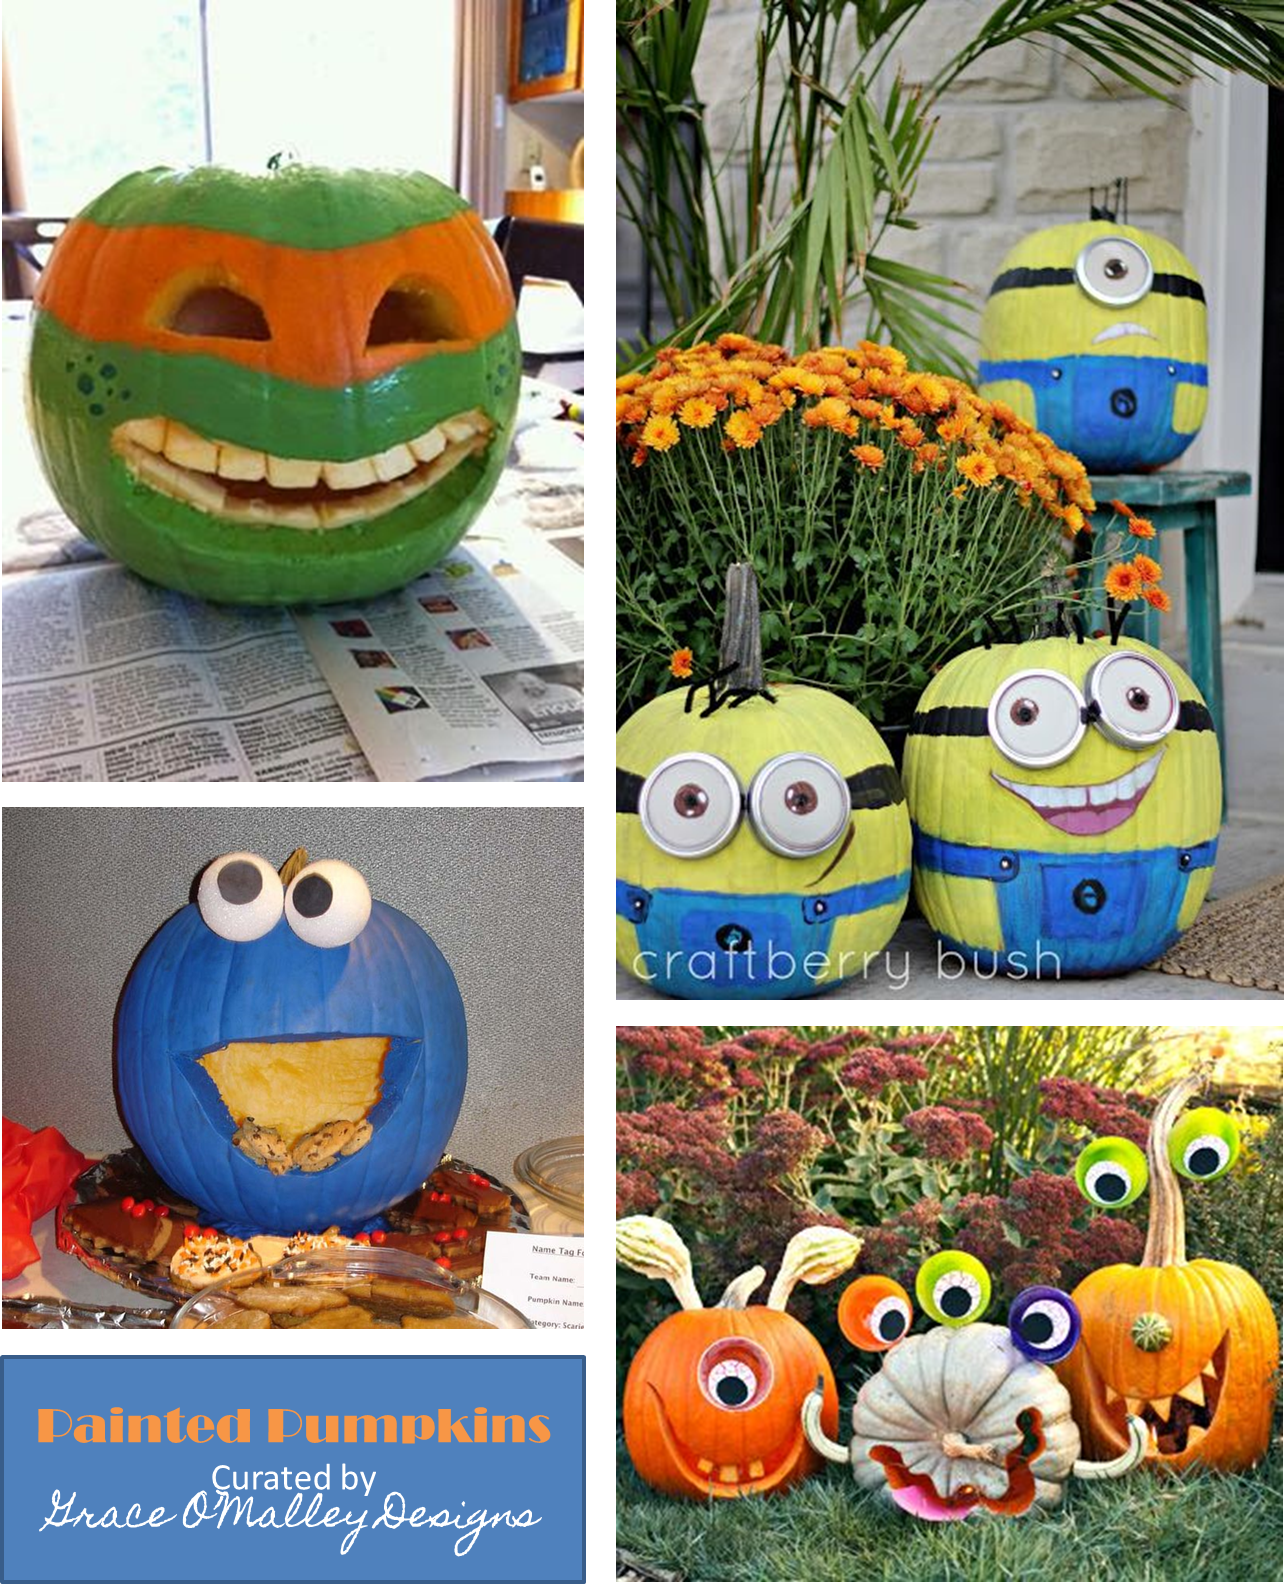 pumpkin carving ideas for halloween via grace o'malley designs